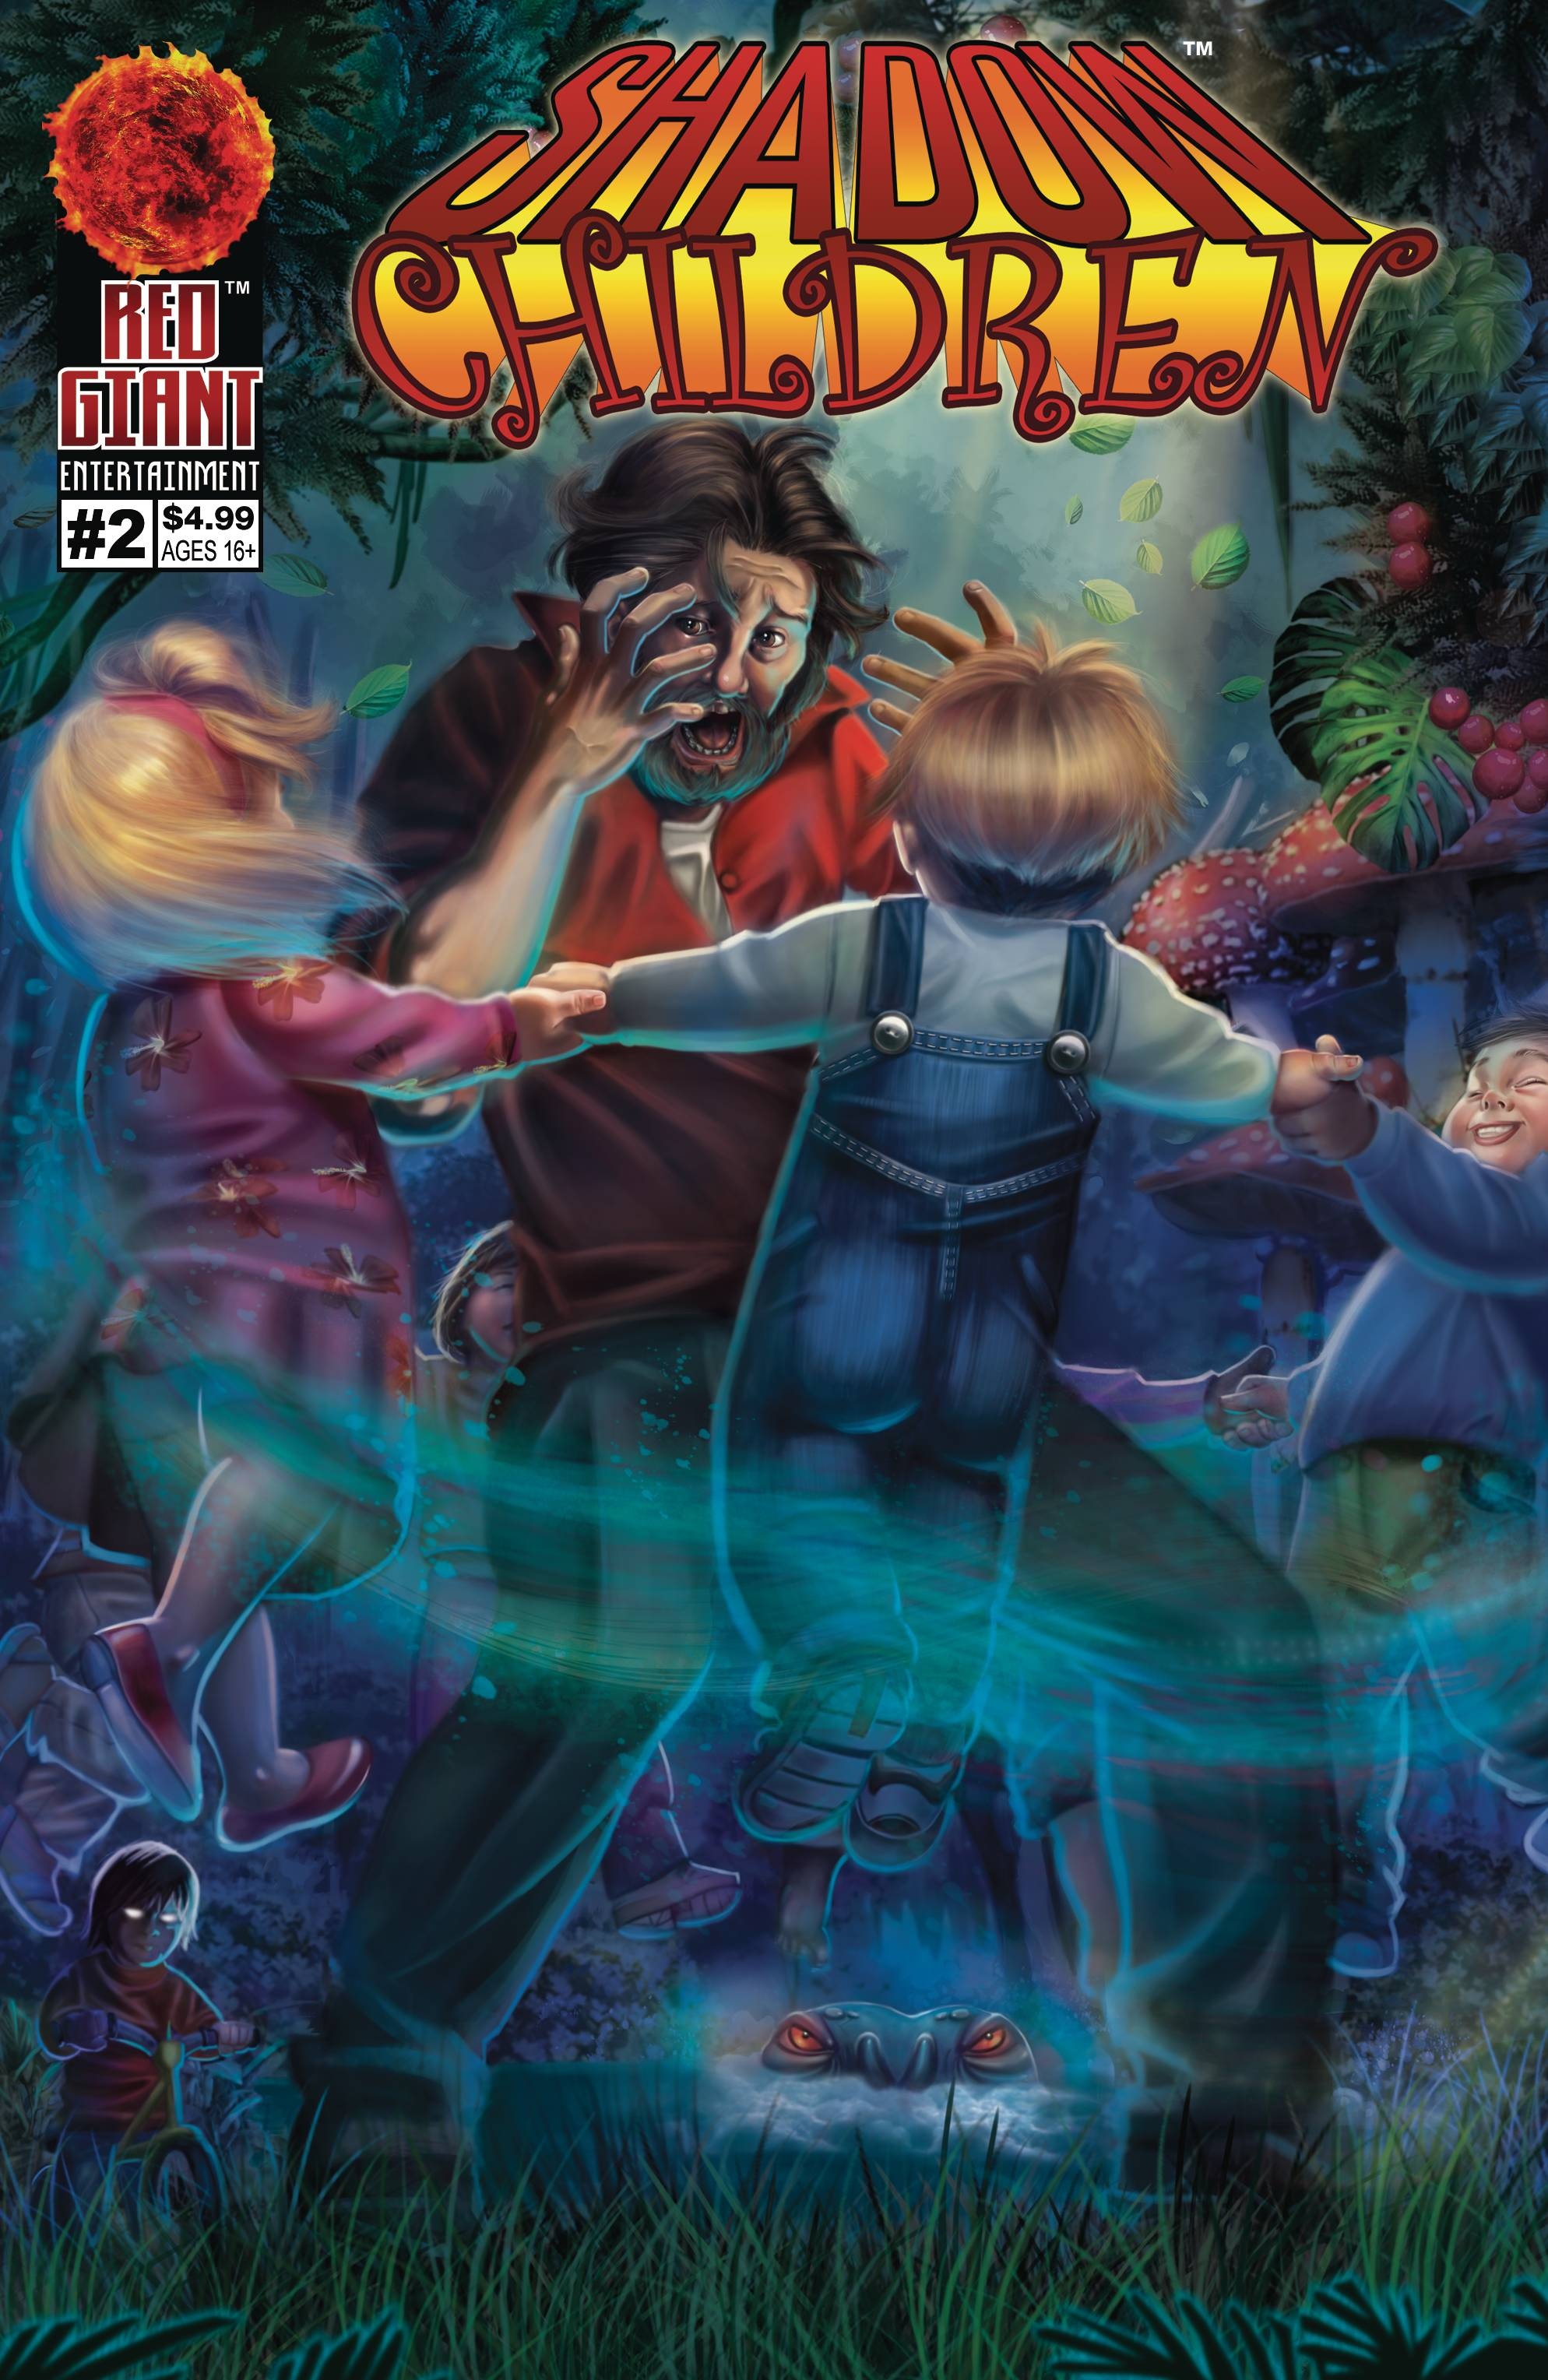 SHADOW CHILDREN #2  PRE-ORDER